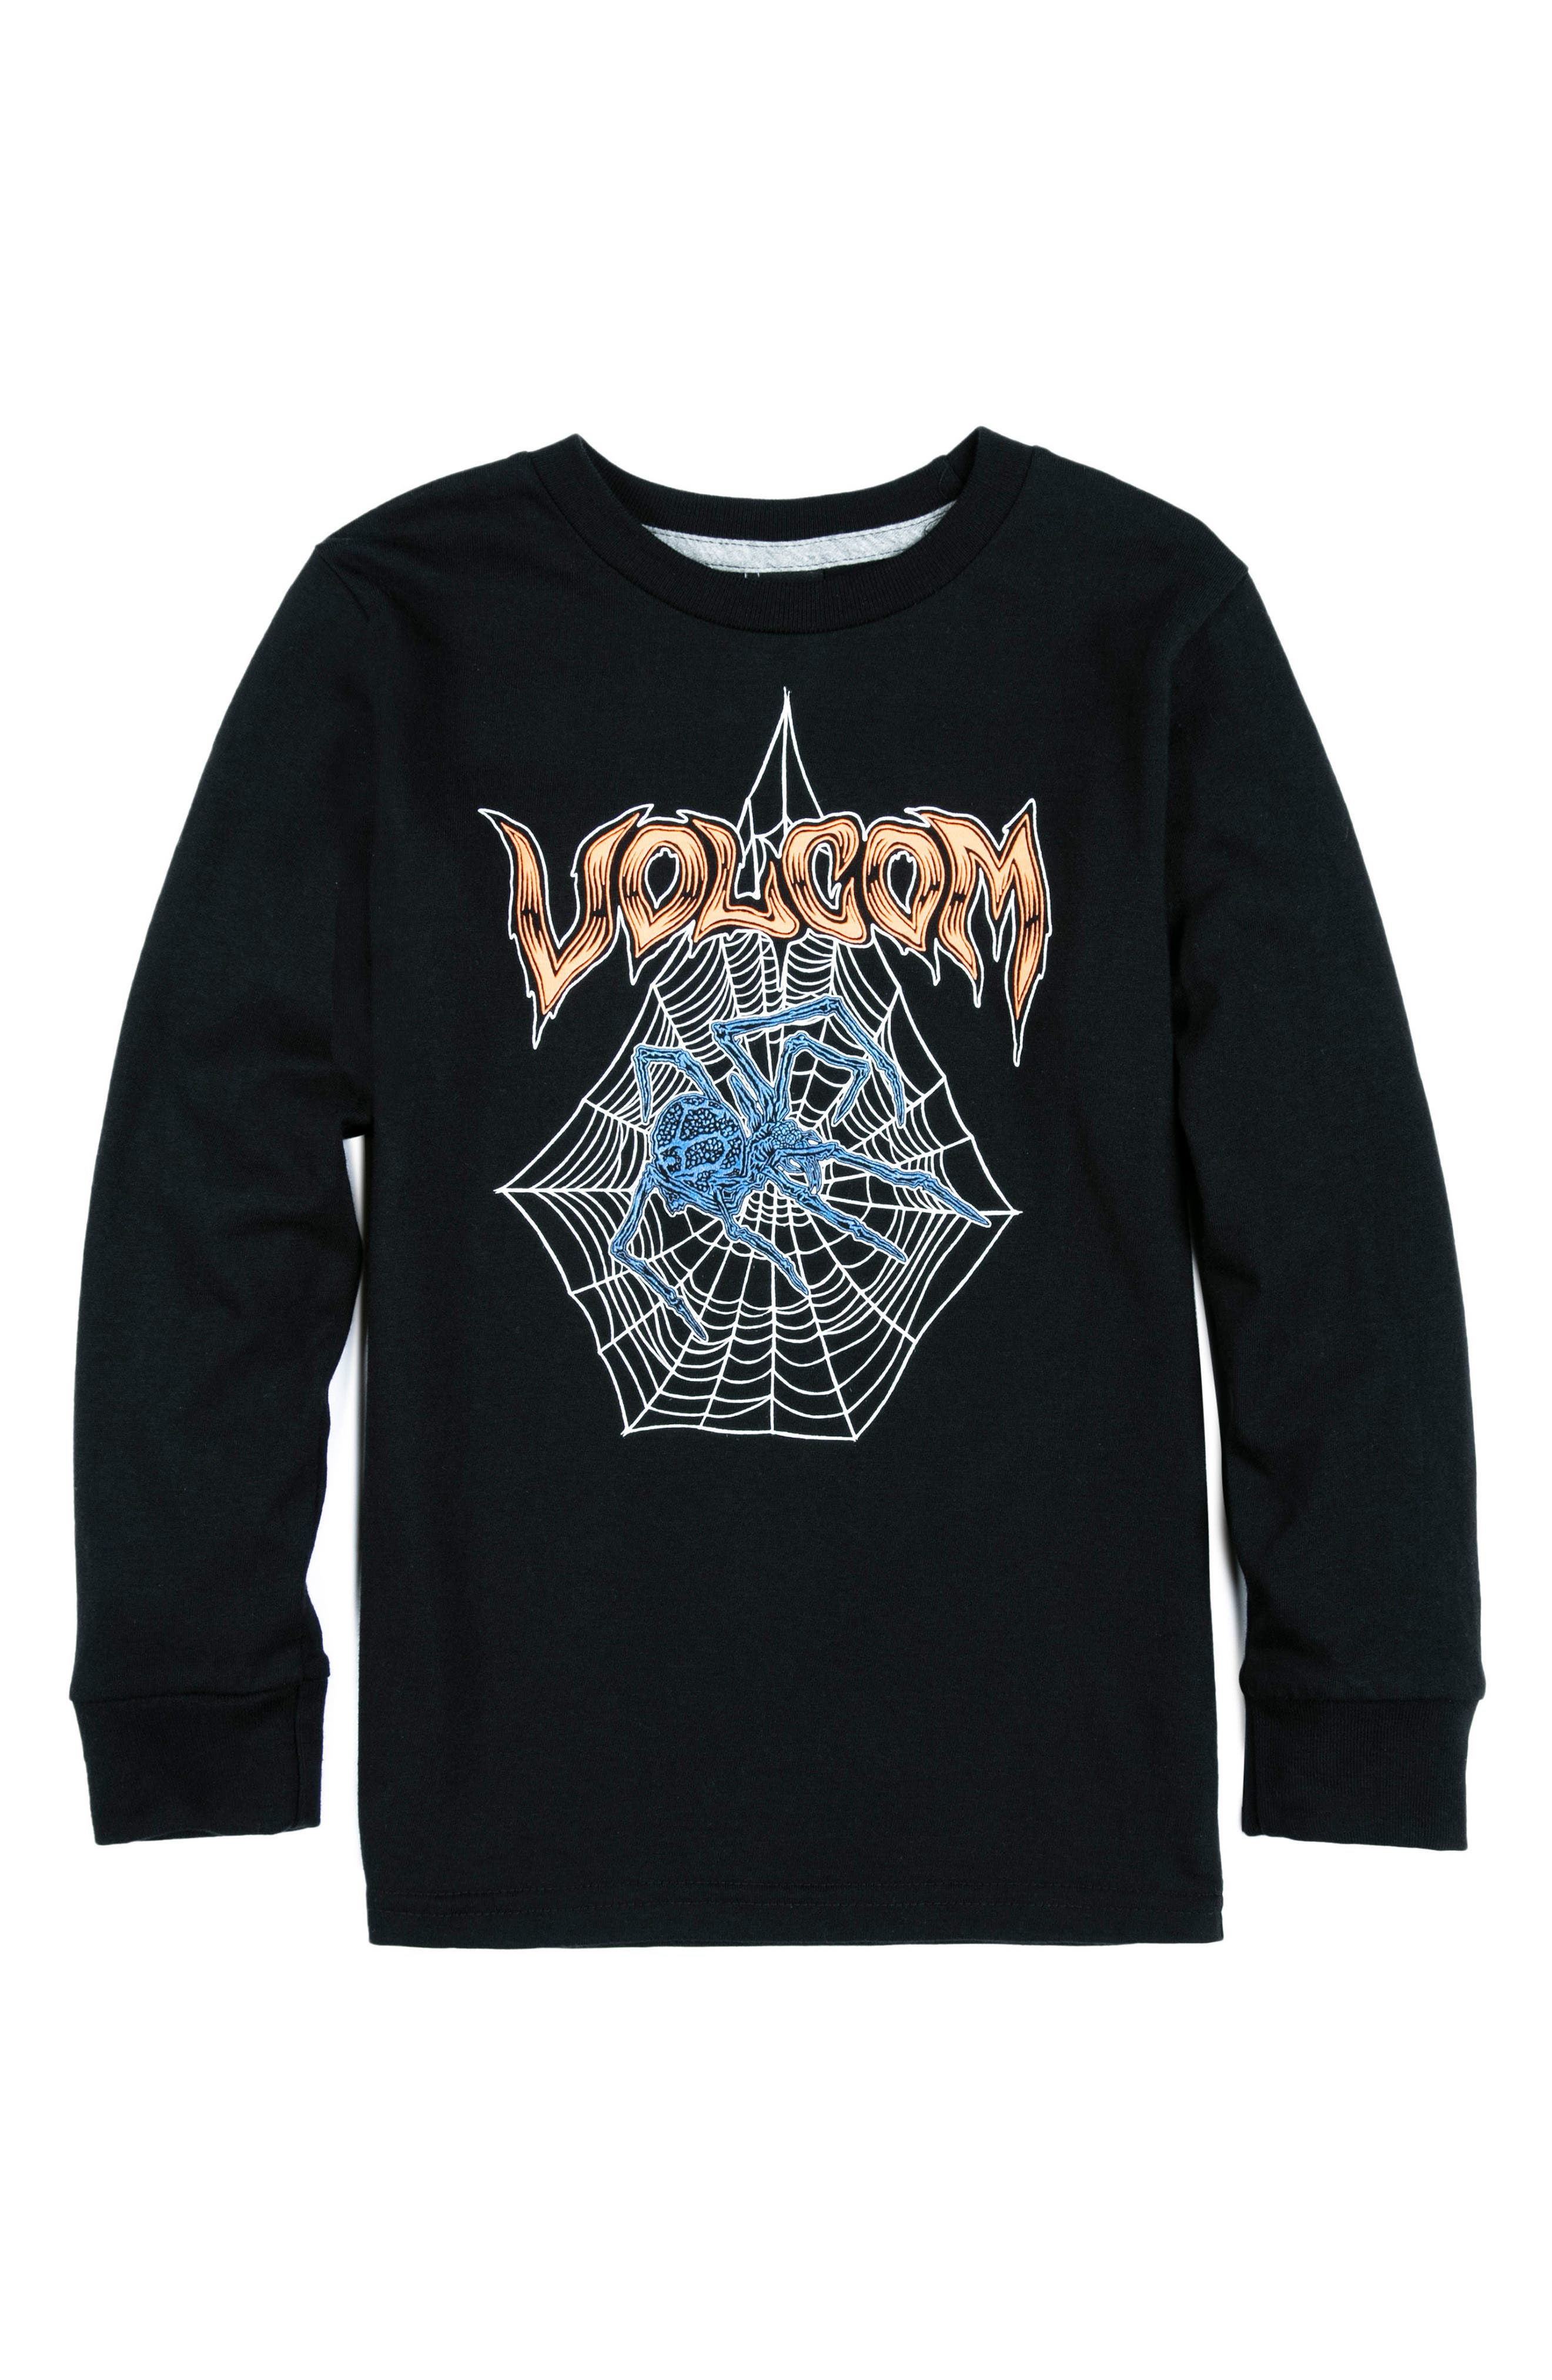 Venom Spider Glow-in-the-Dark Long Sleeve T-Shirt,                             Main thumbnail 1, color,